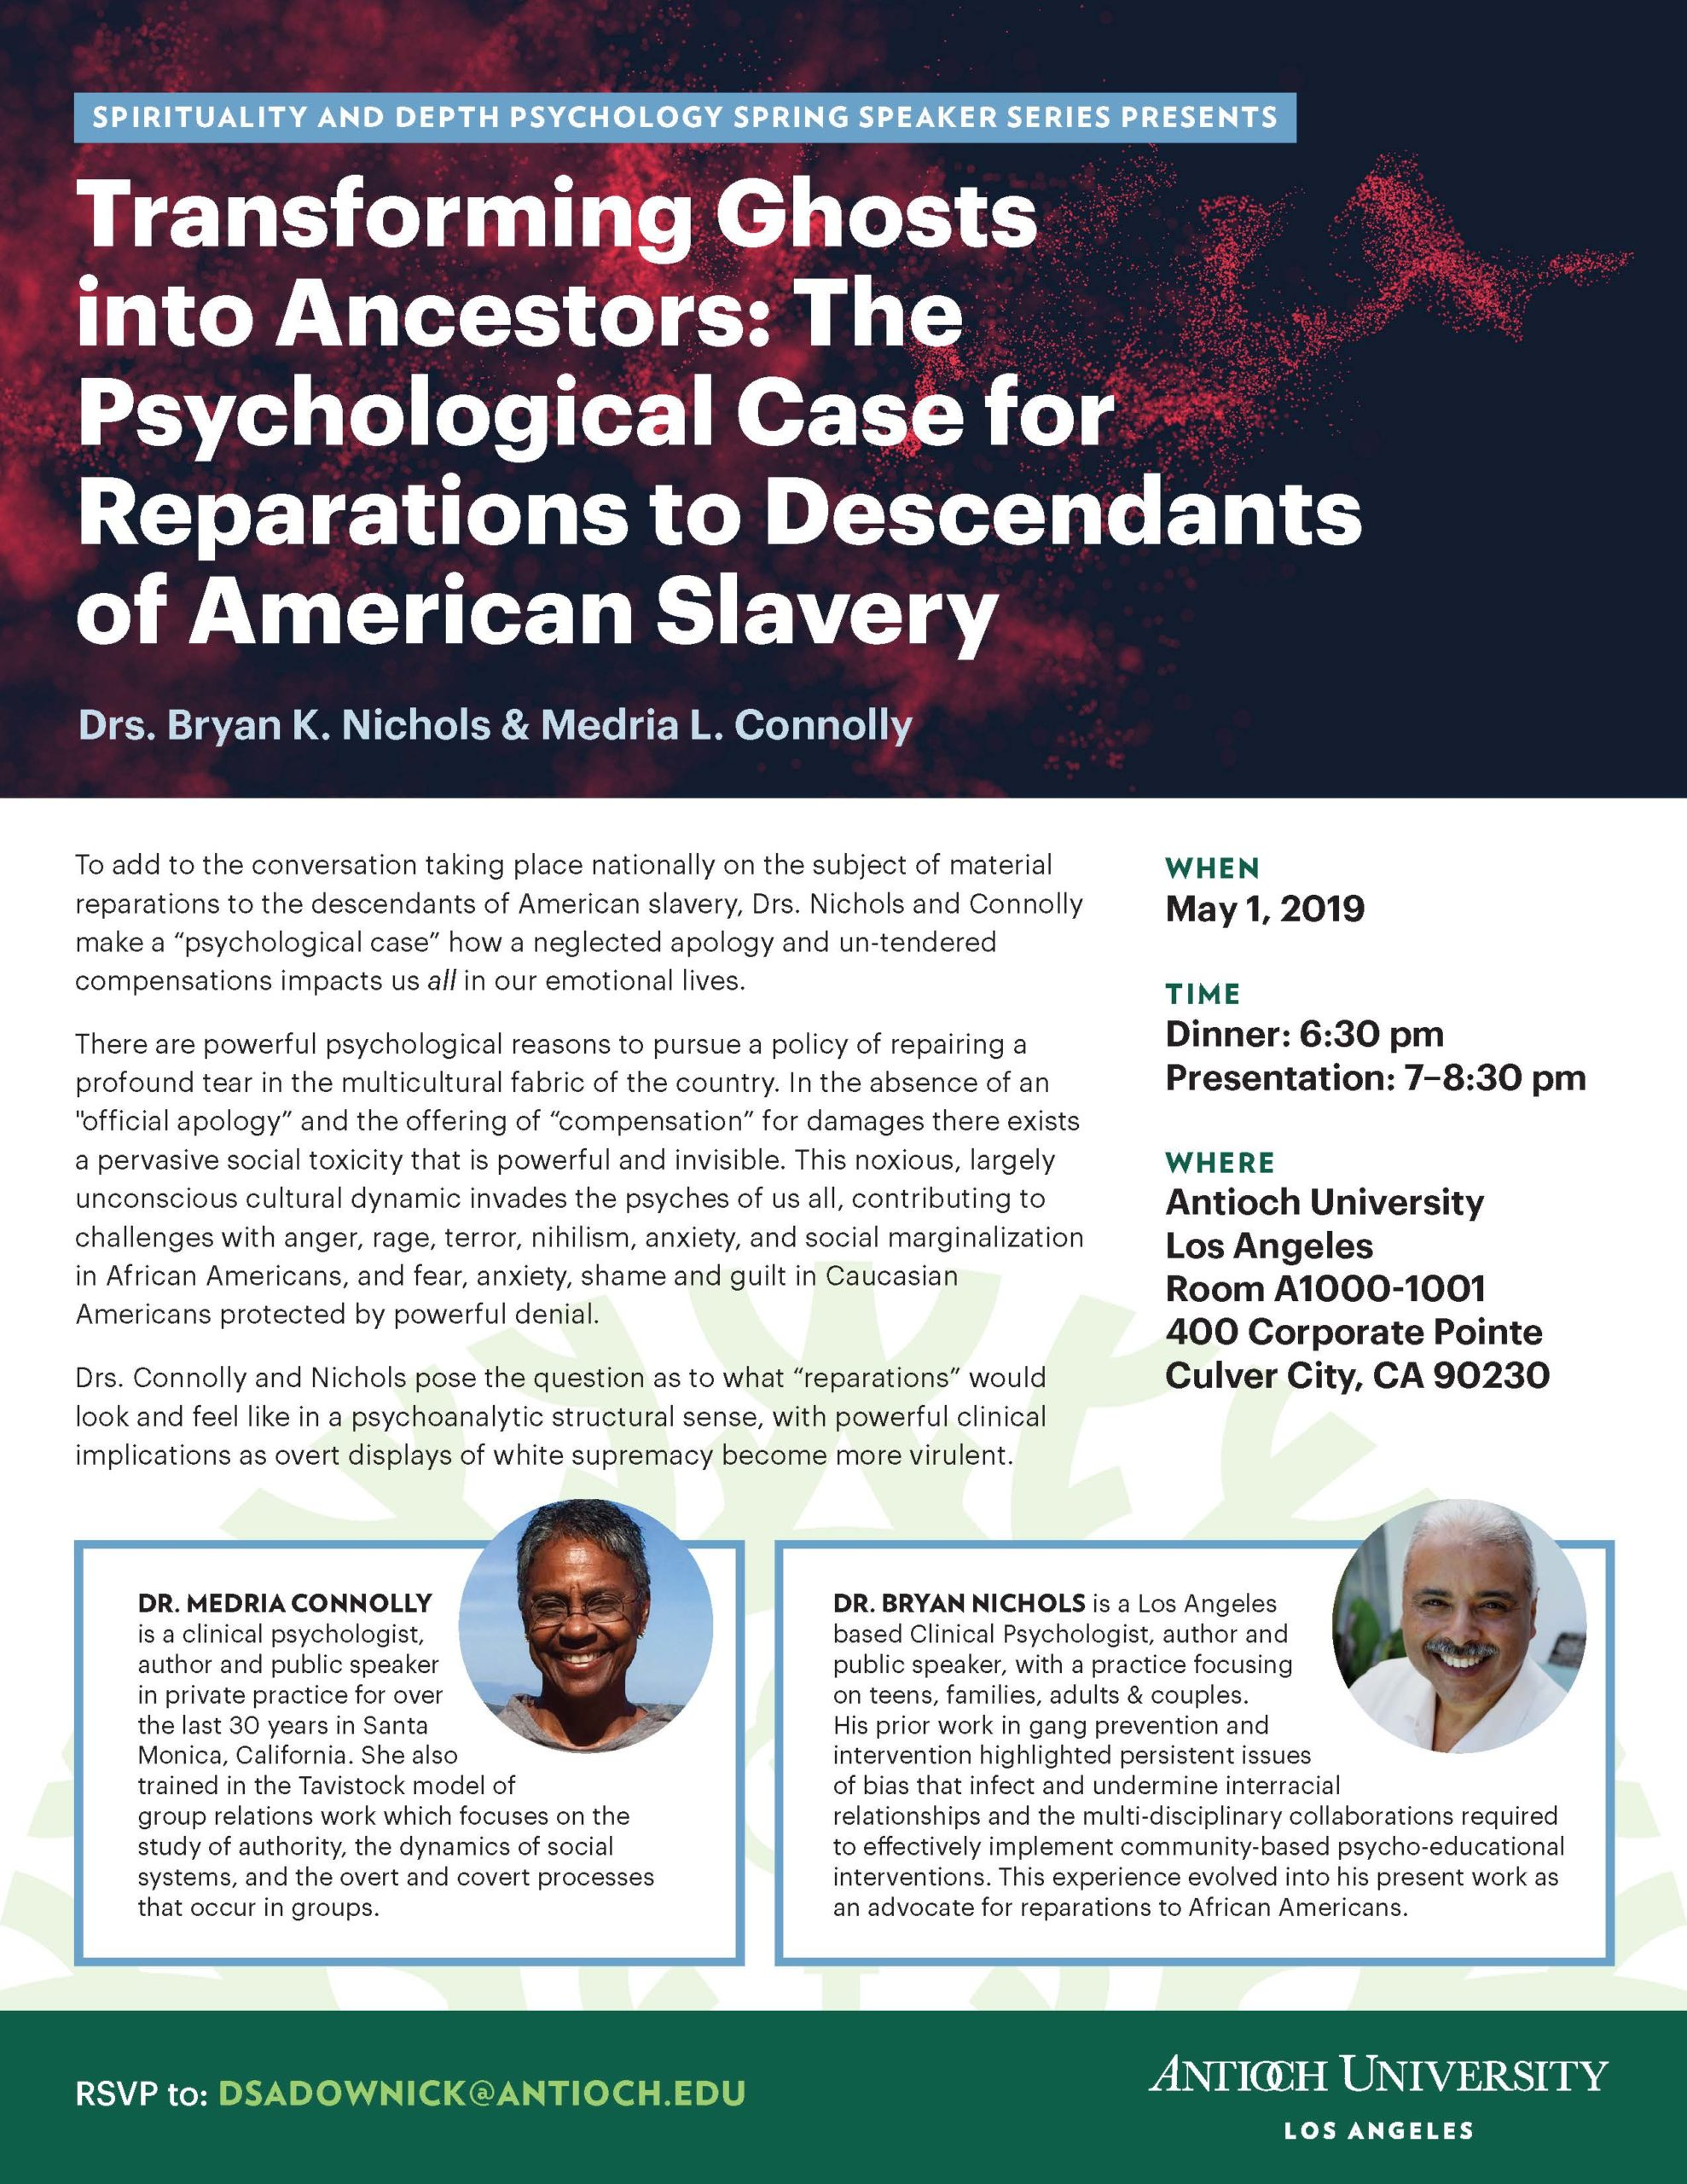 Flier for Transforming Ghosts into Ancestors: The Psychological Case for Prearations to Descendants of American Slavery